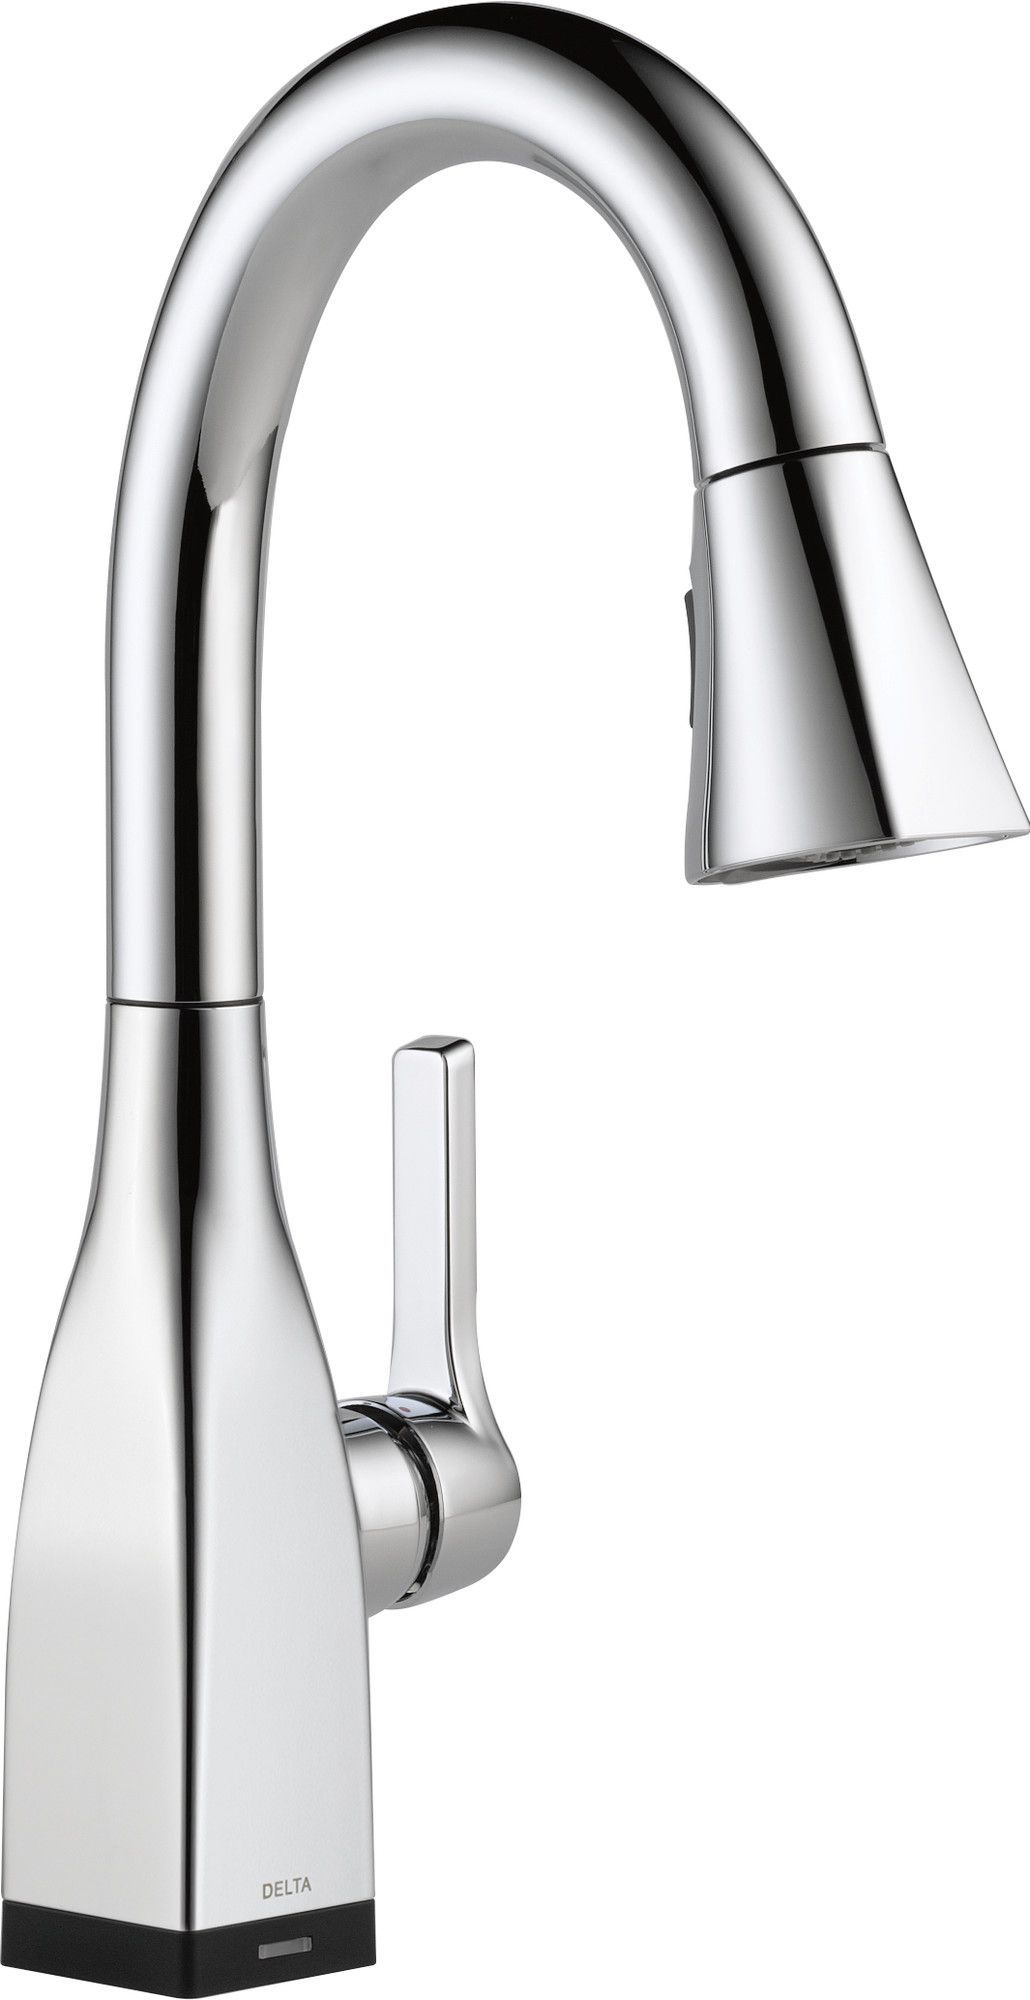 Mateo™ Touchless Single Handle Deck Mounted Bar Faucet